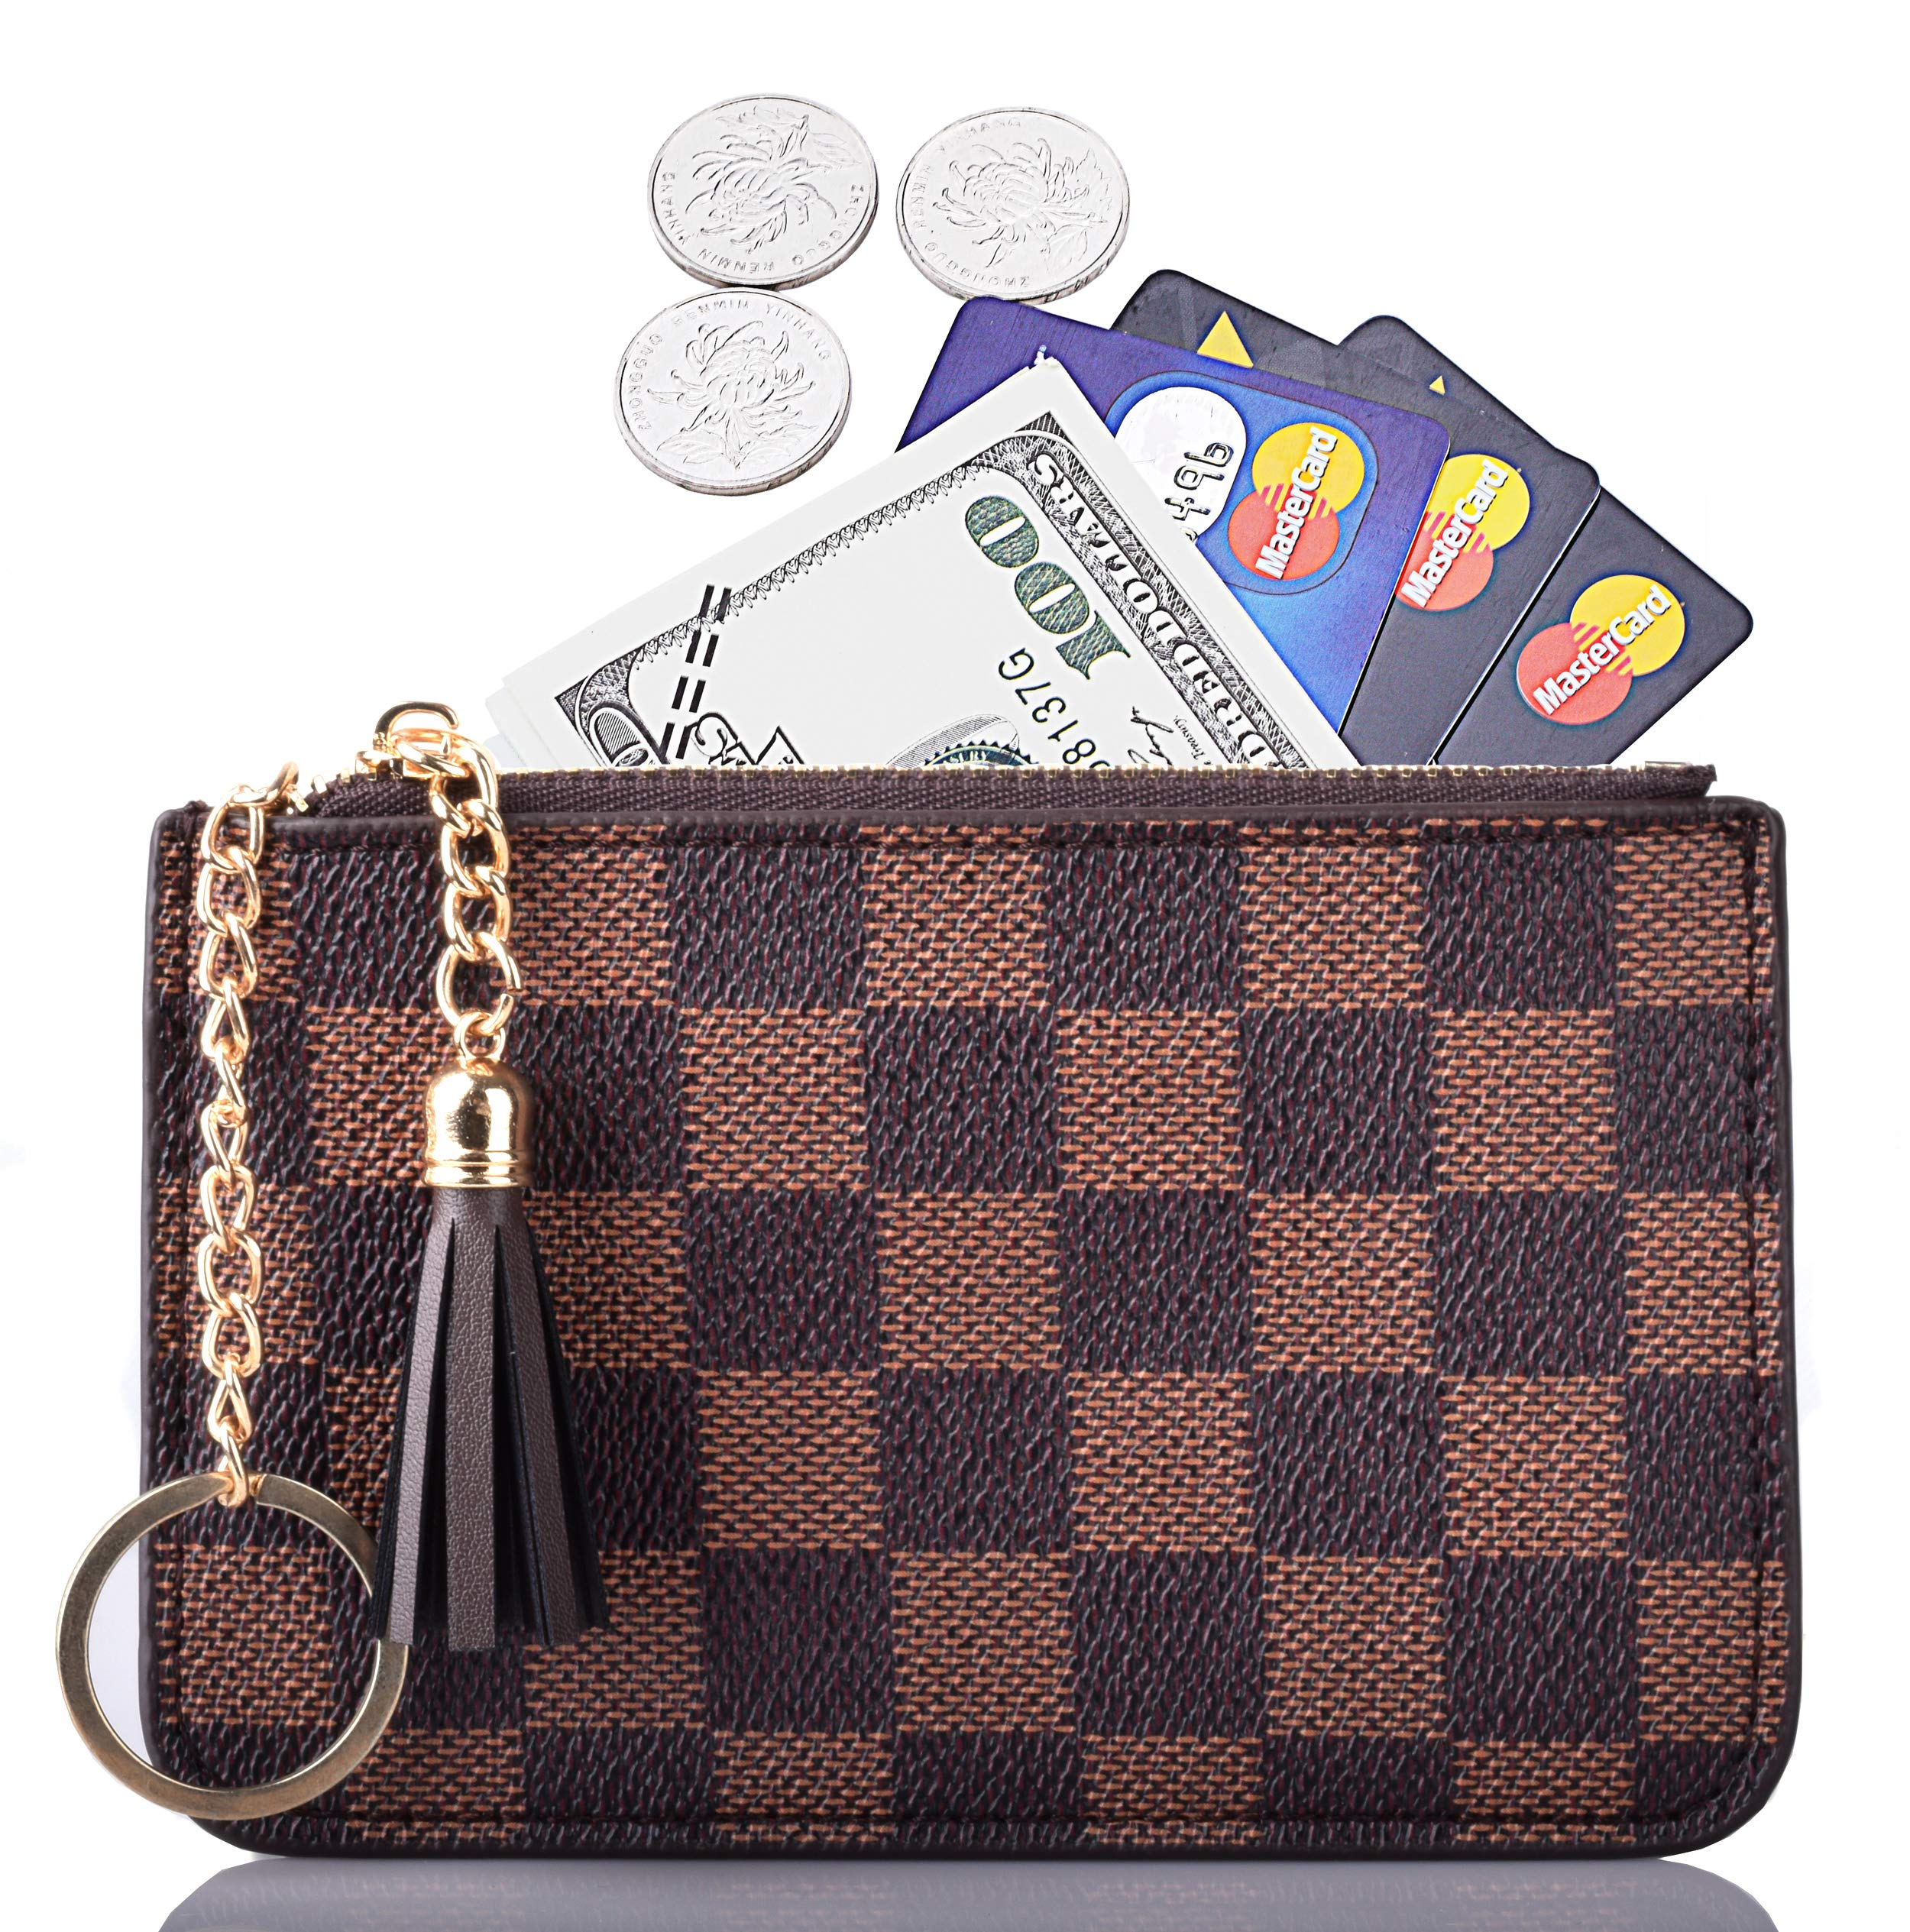 e5424518faea Details about Women Coin Purse Leather Change Credit Card Holder Wallet  with Key Chain Tassel